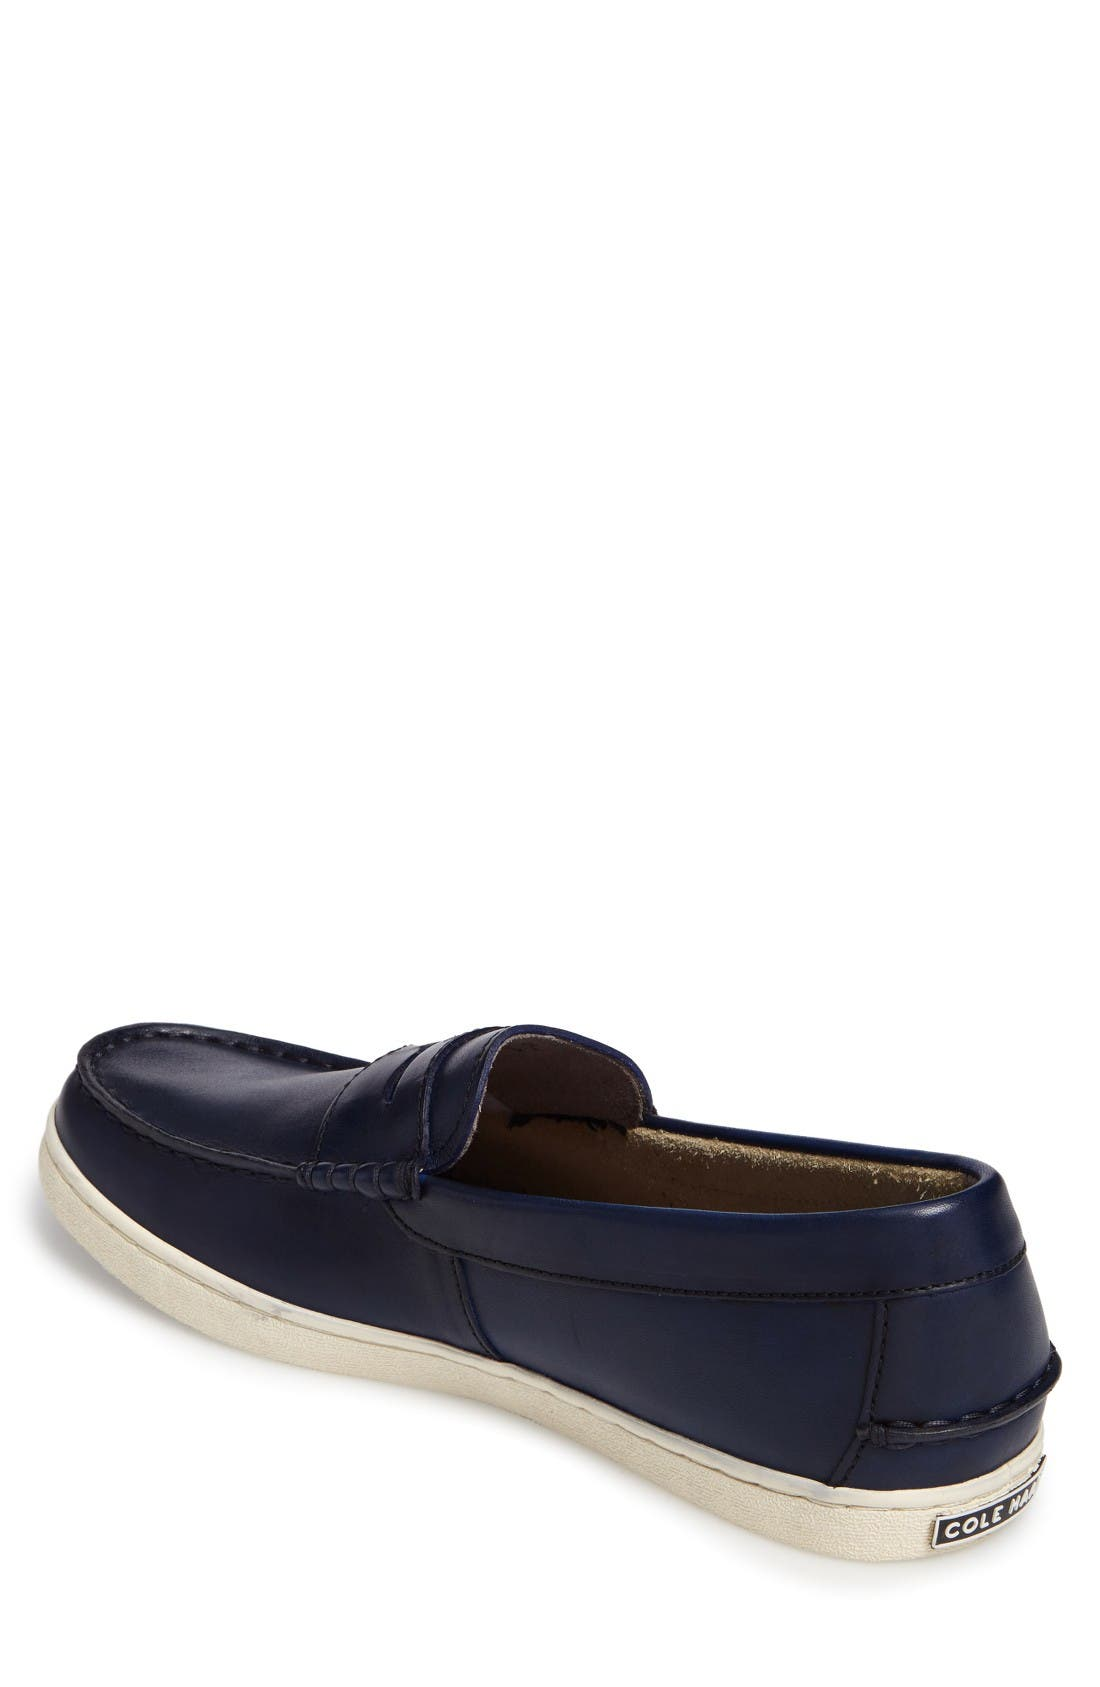 Pinch Penny Loafer,                             Alternate thumbnail 2, color,                             Blazer Blue Leather